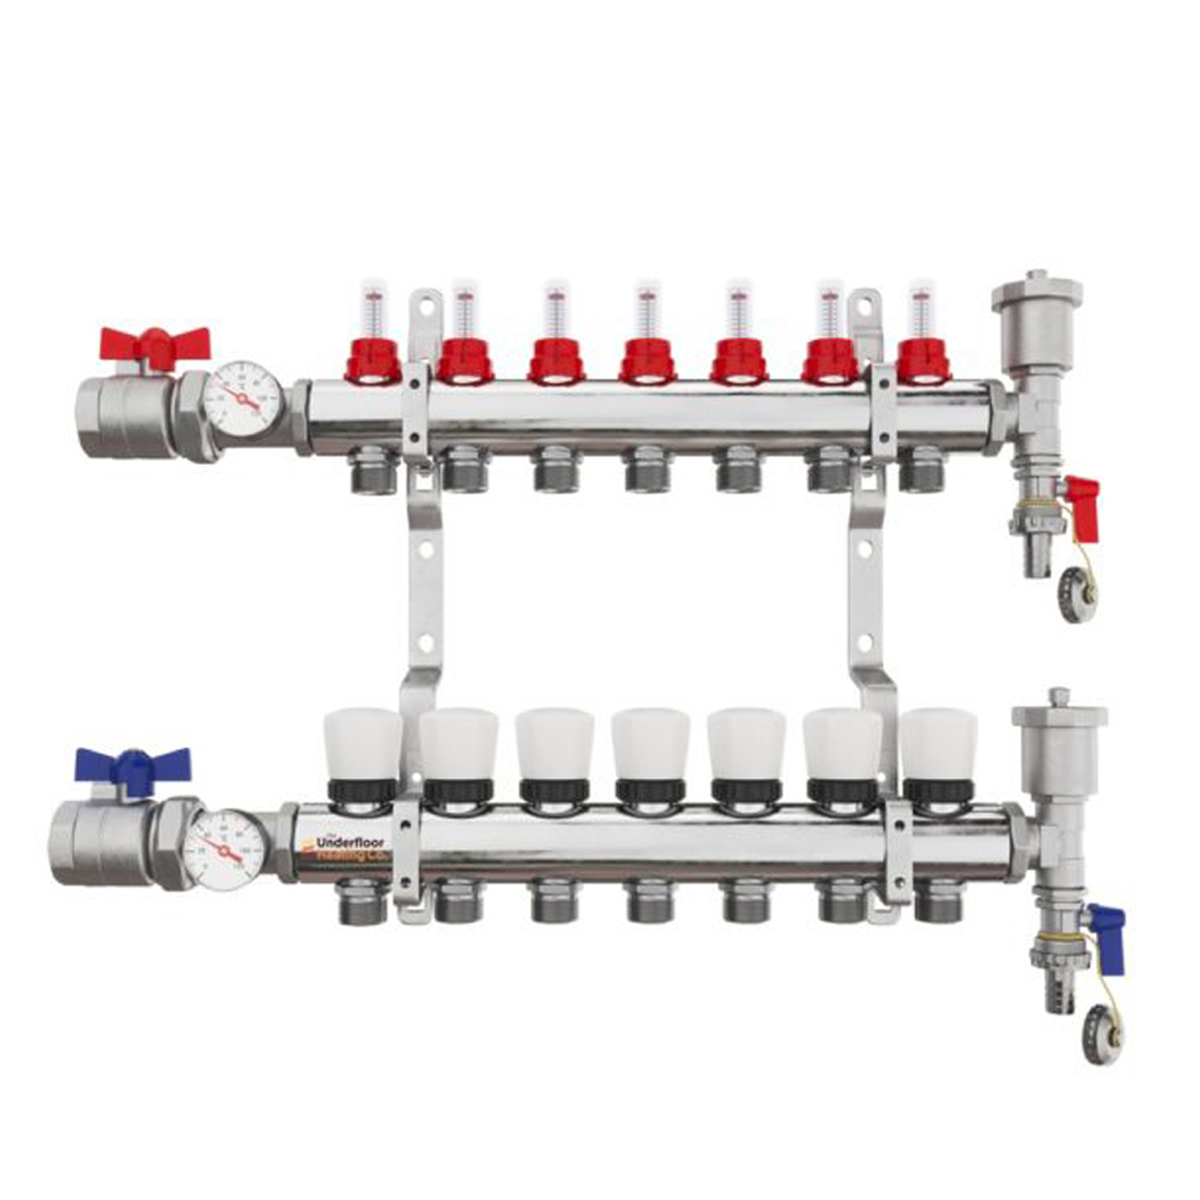 7 Port Brass Manifold With Pressure gauge and auto air vent